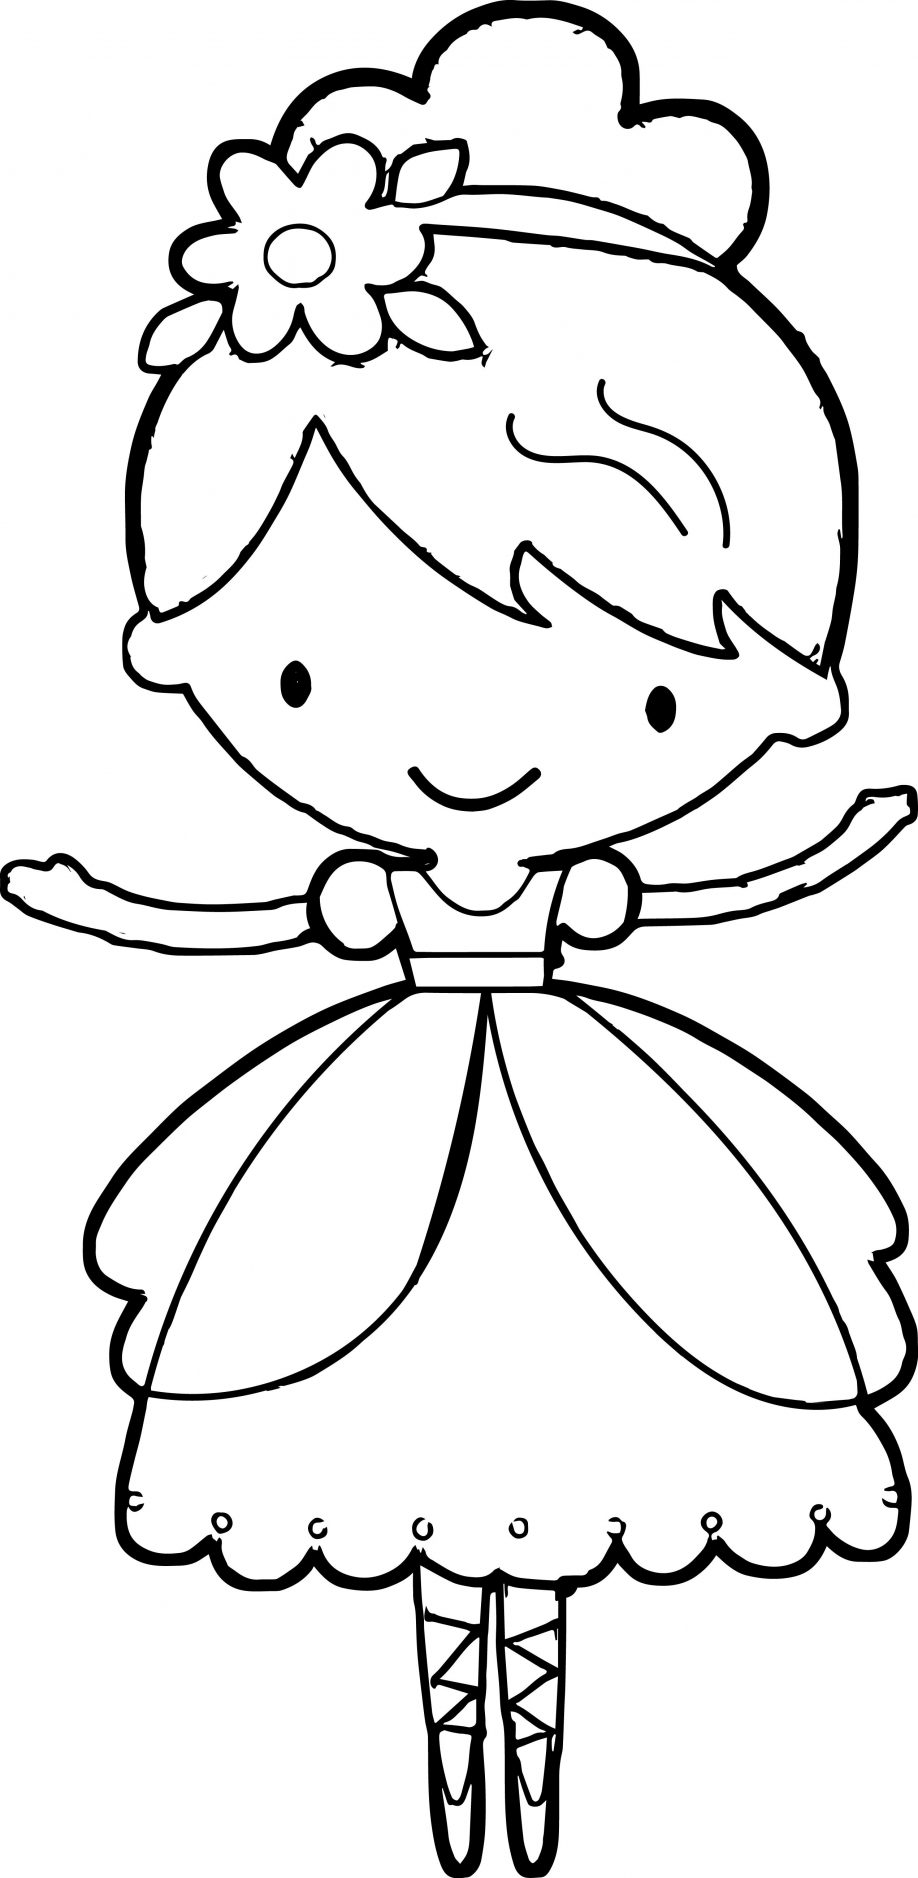 ballerina to color 20 free printable ballerina coloring pages to color ballerina